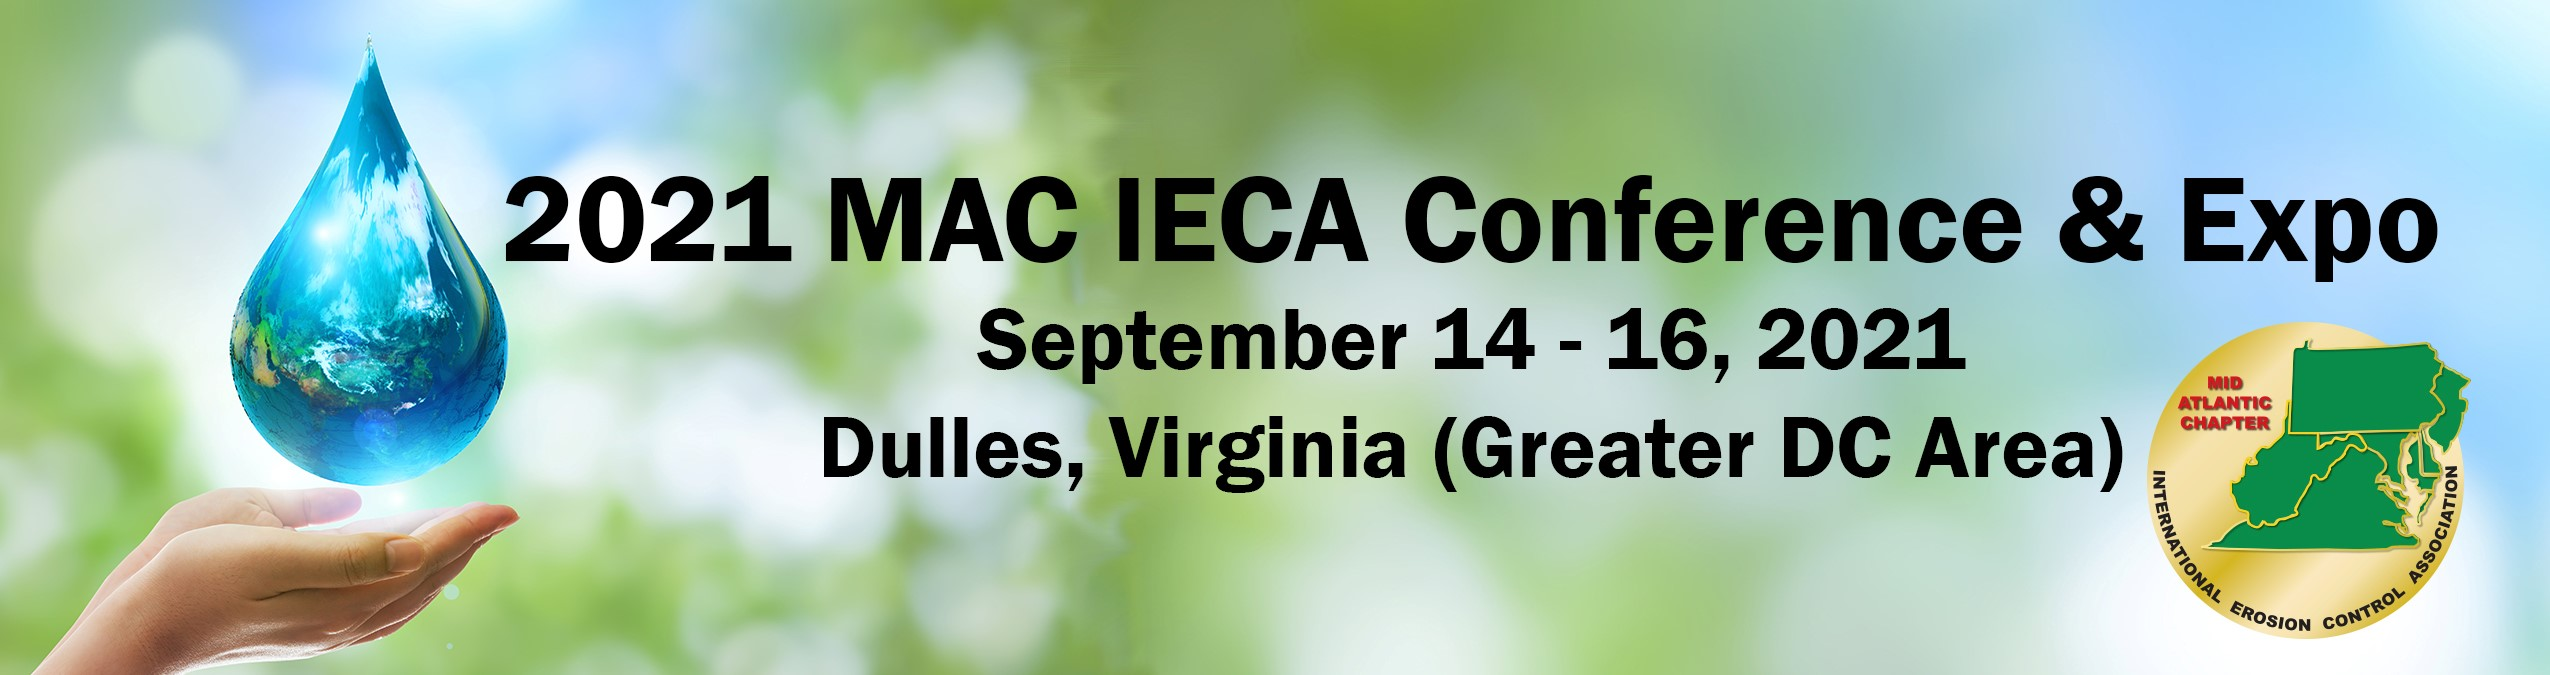 2021 MAC IECA Conference and Expo Call for Abstracts